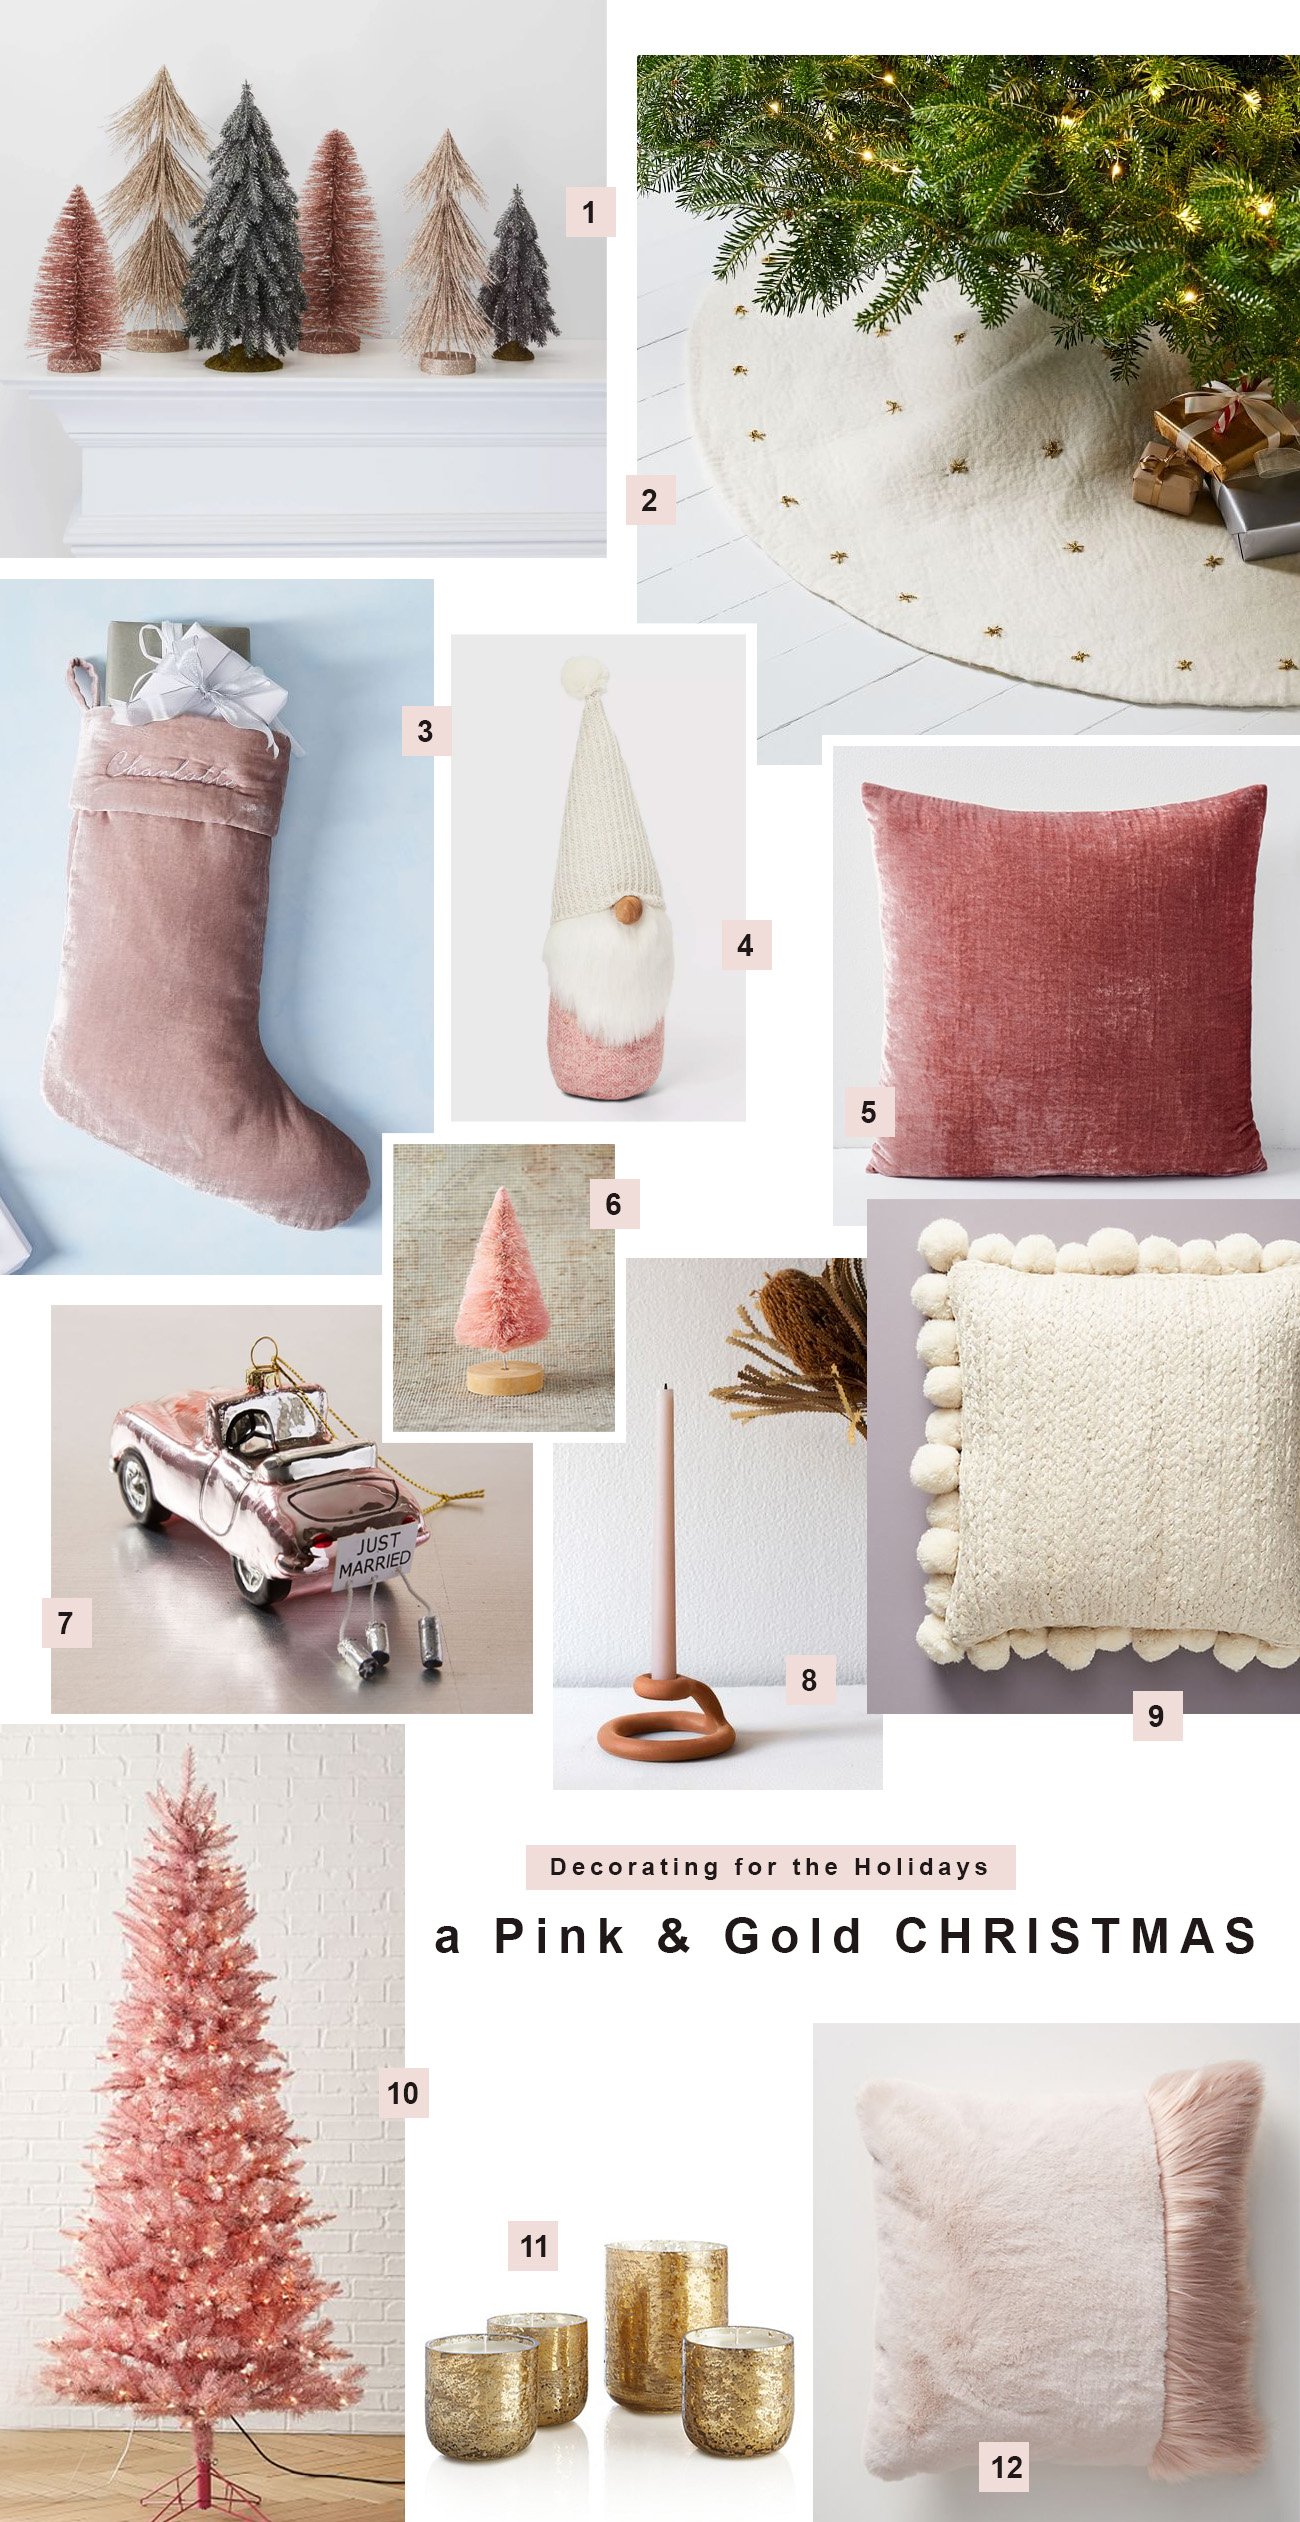 Get the Look: a Pink & Gold Christmas